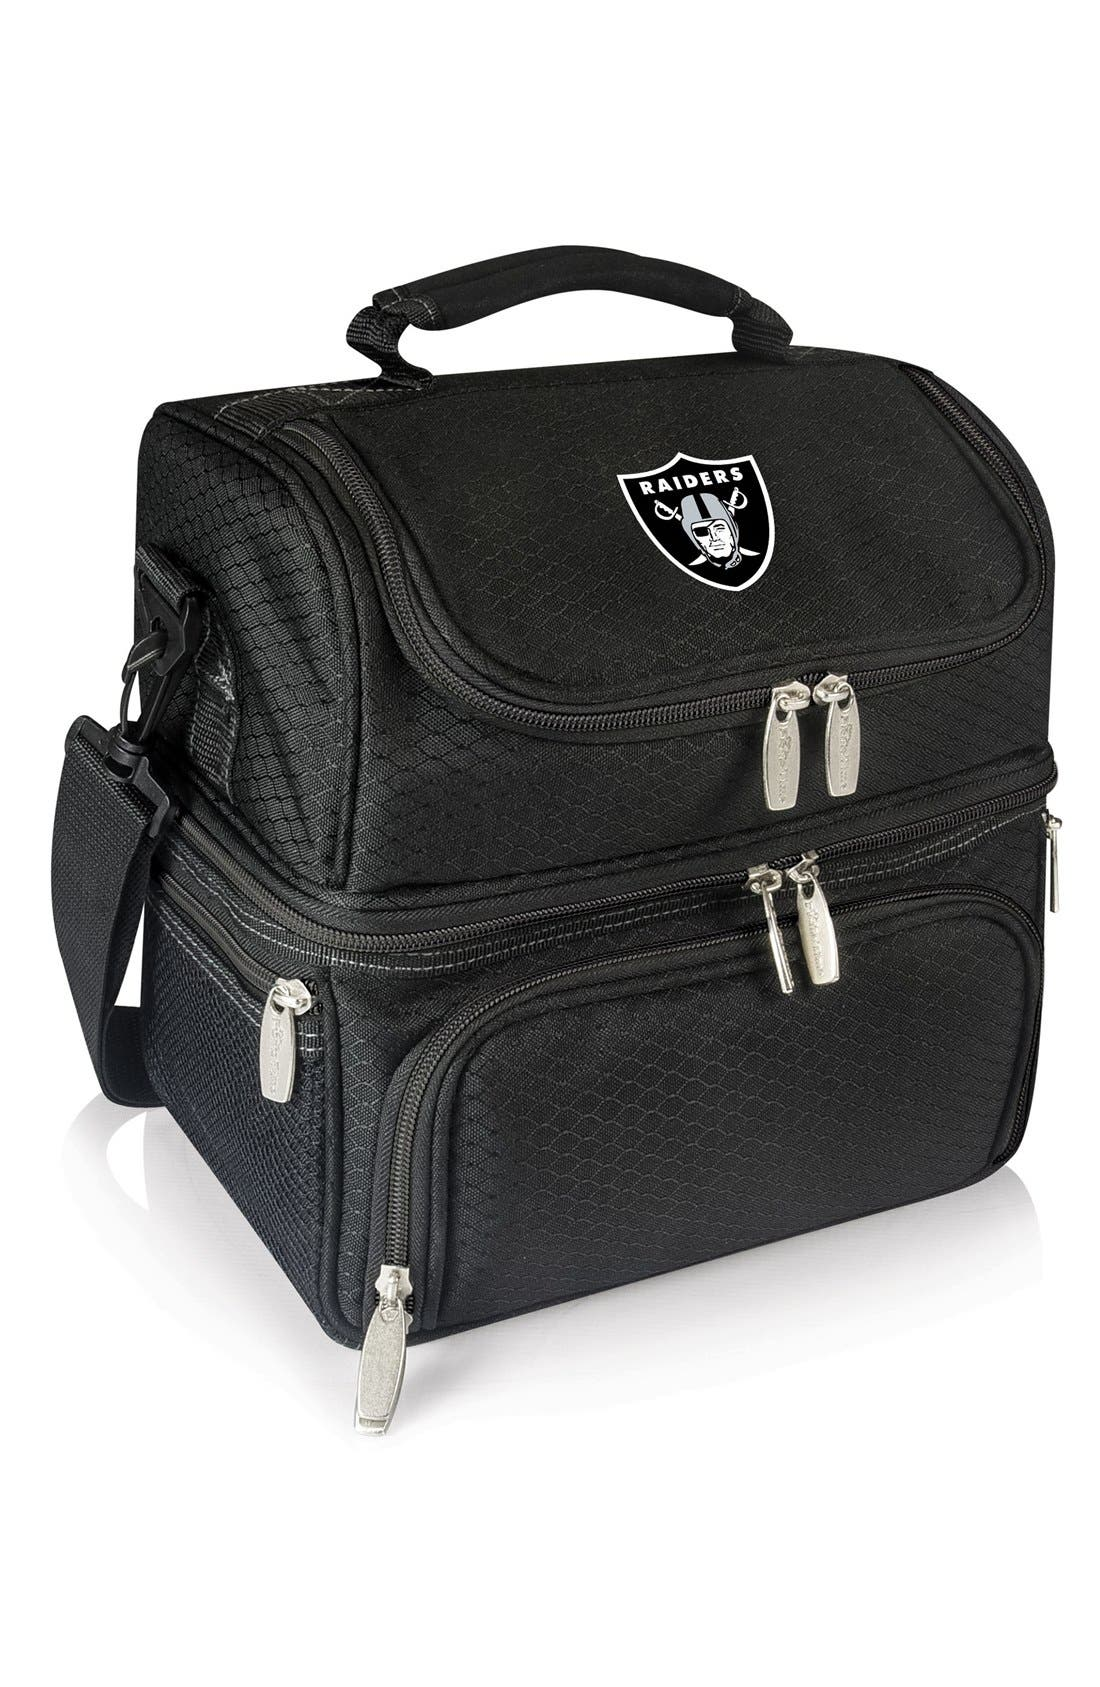 Main Image - Picnic Time 'Pranzo' NFL Insulated Lunch Box